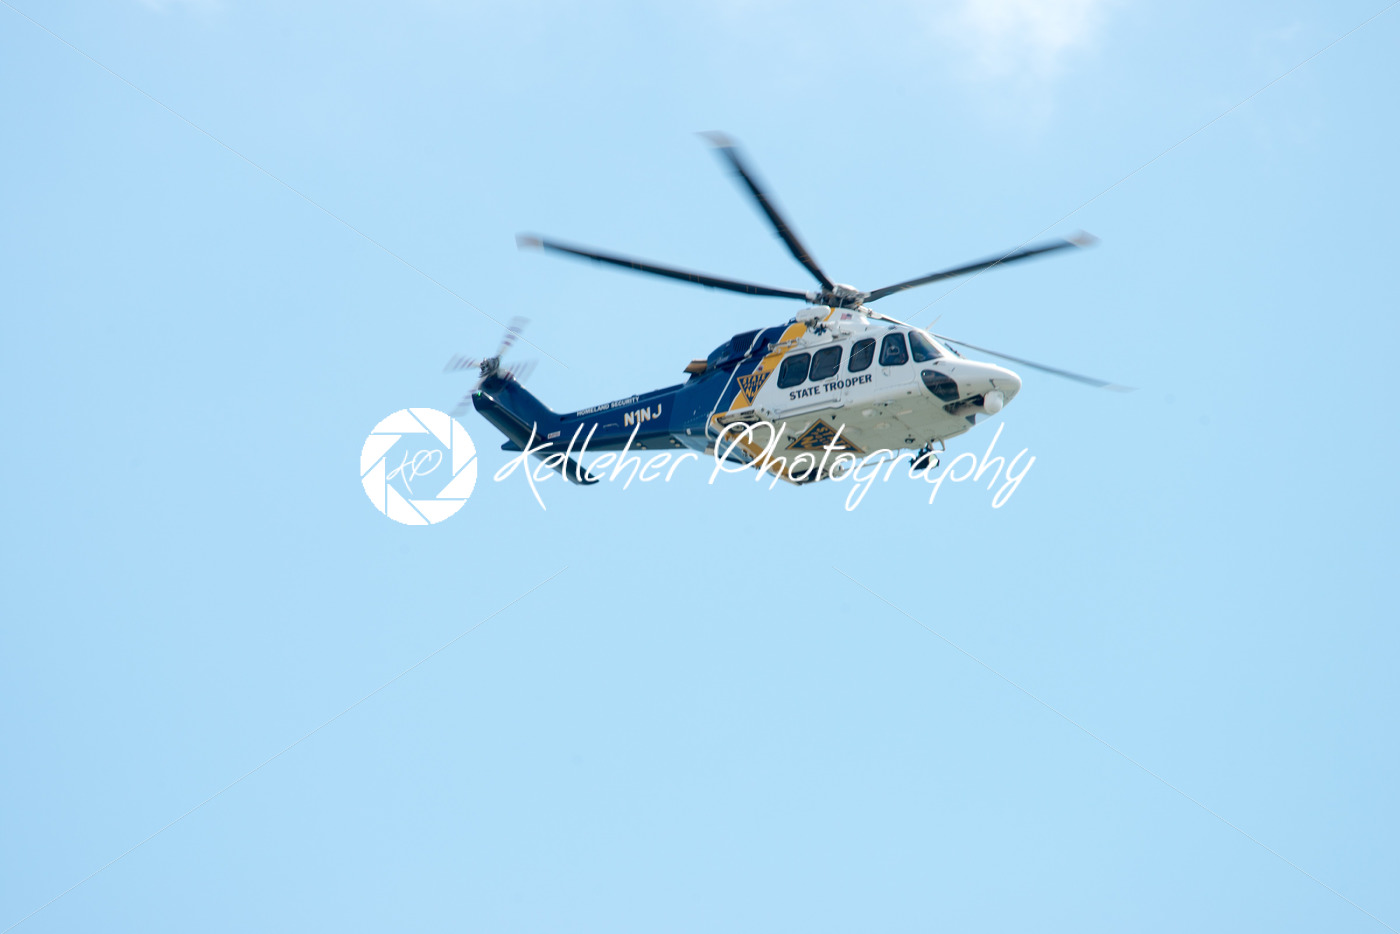 ATLANTIC CITY, NJ – AUGUST 17: NJ State Police Trooper Helicopter at Annual Atlantic City Air Show on August 17, 2016 - Kelleher Photography Store